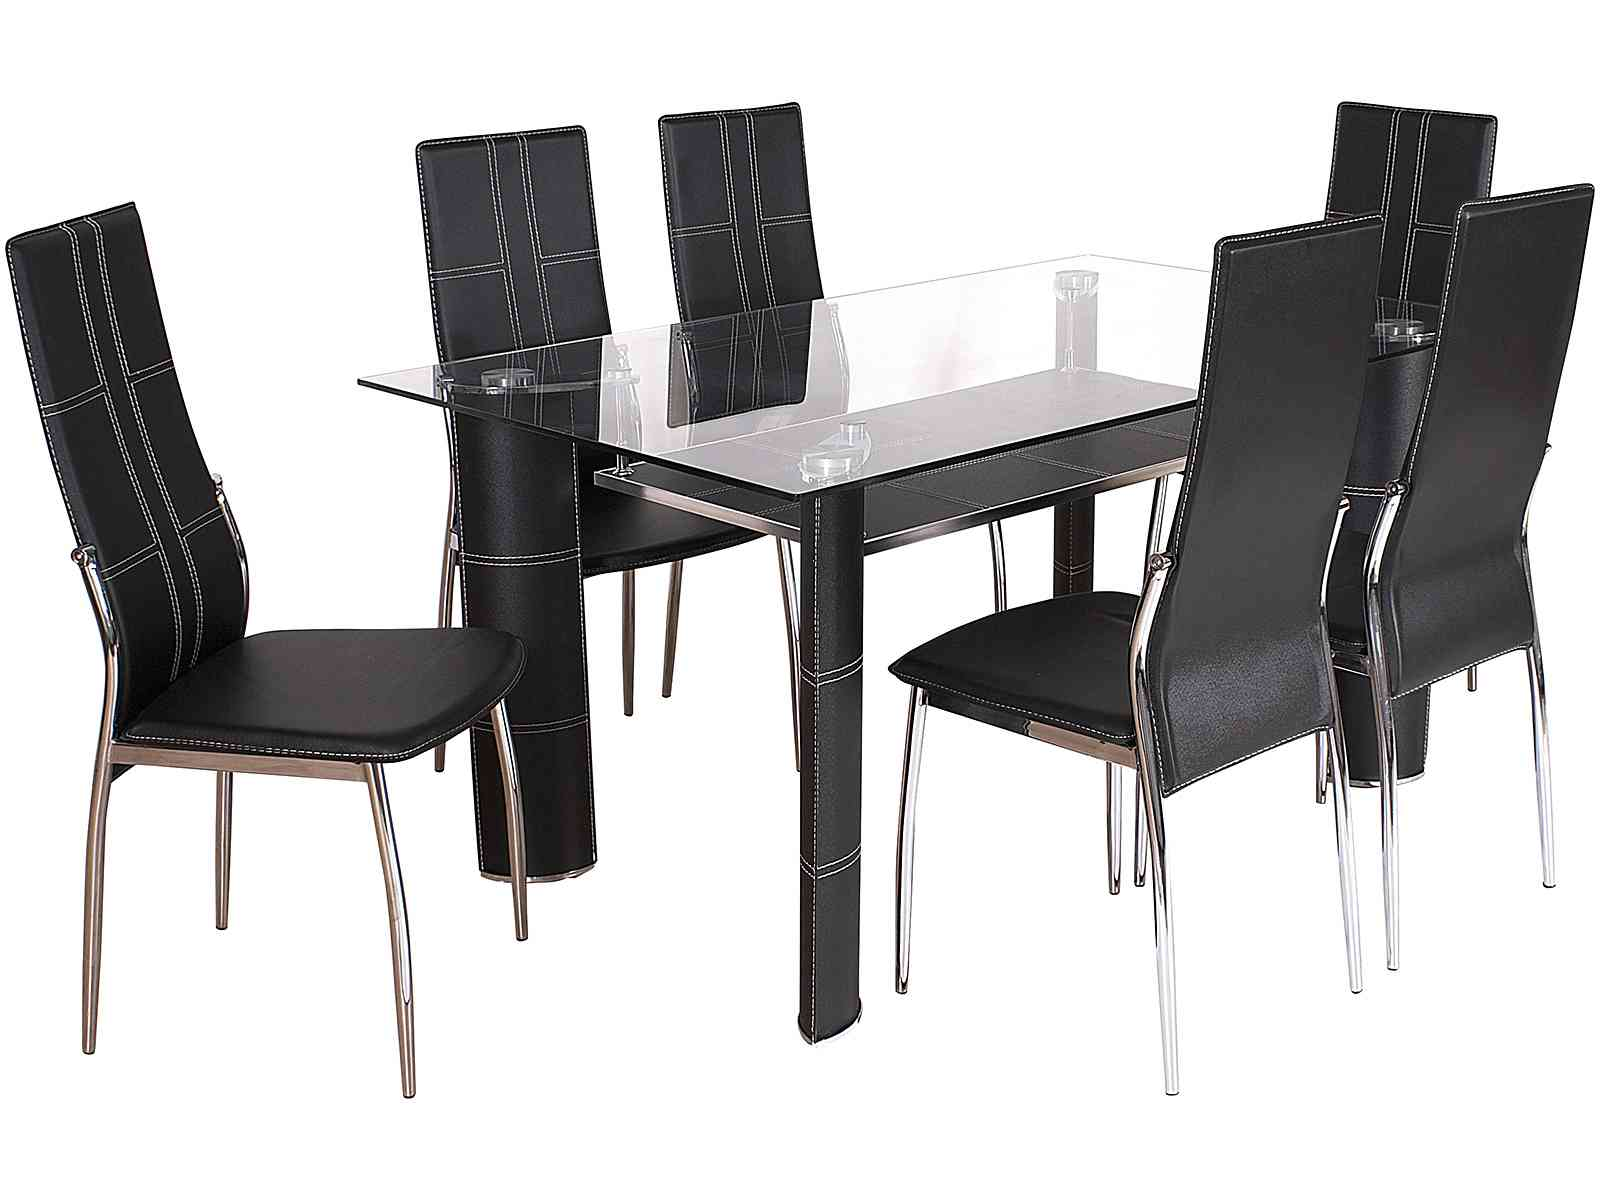 dining table and chair set uk upside down gfw - the furniture warehouse montana